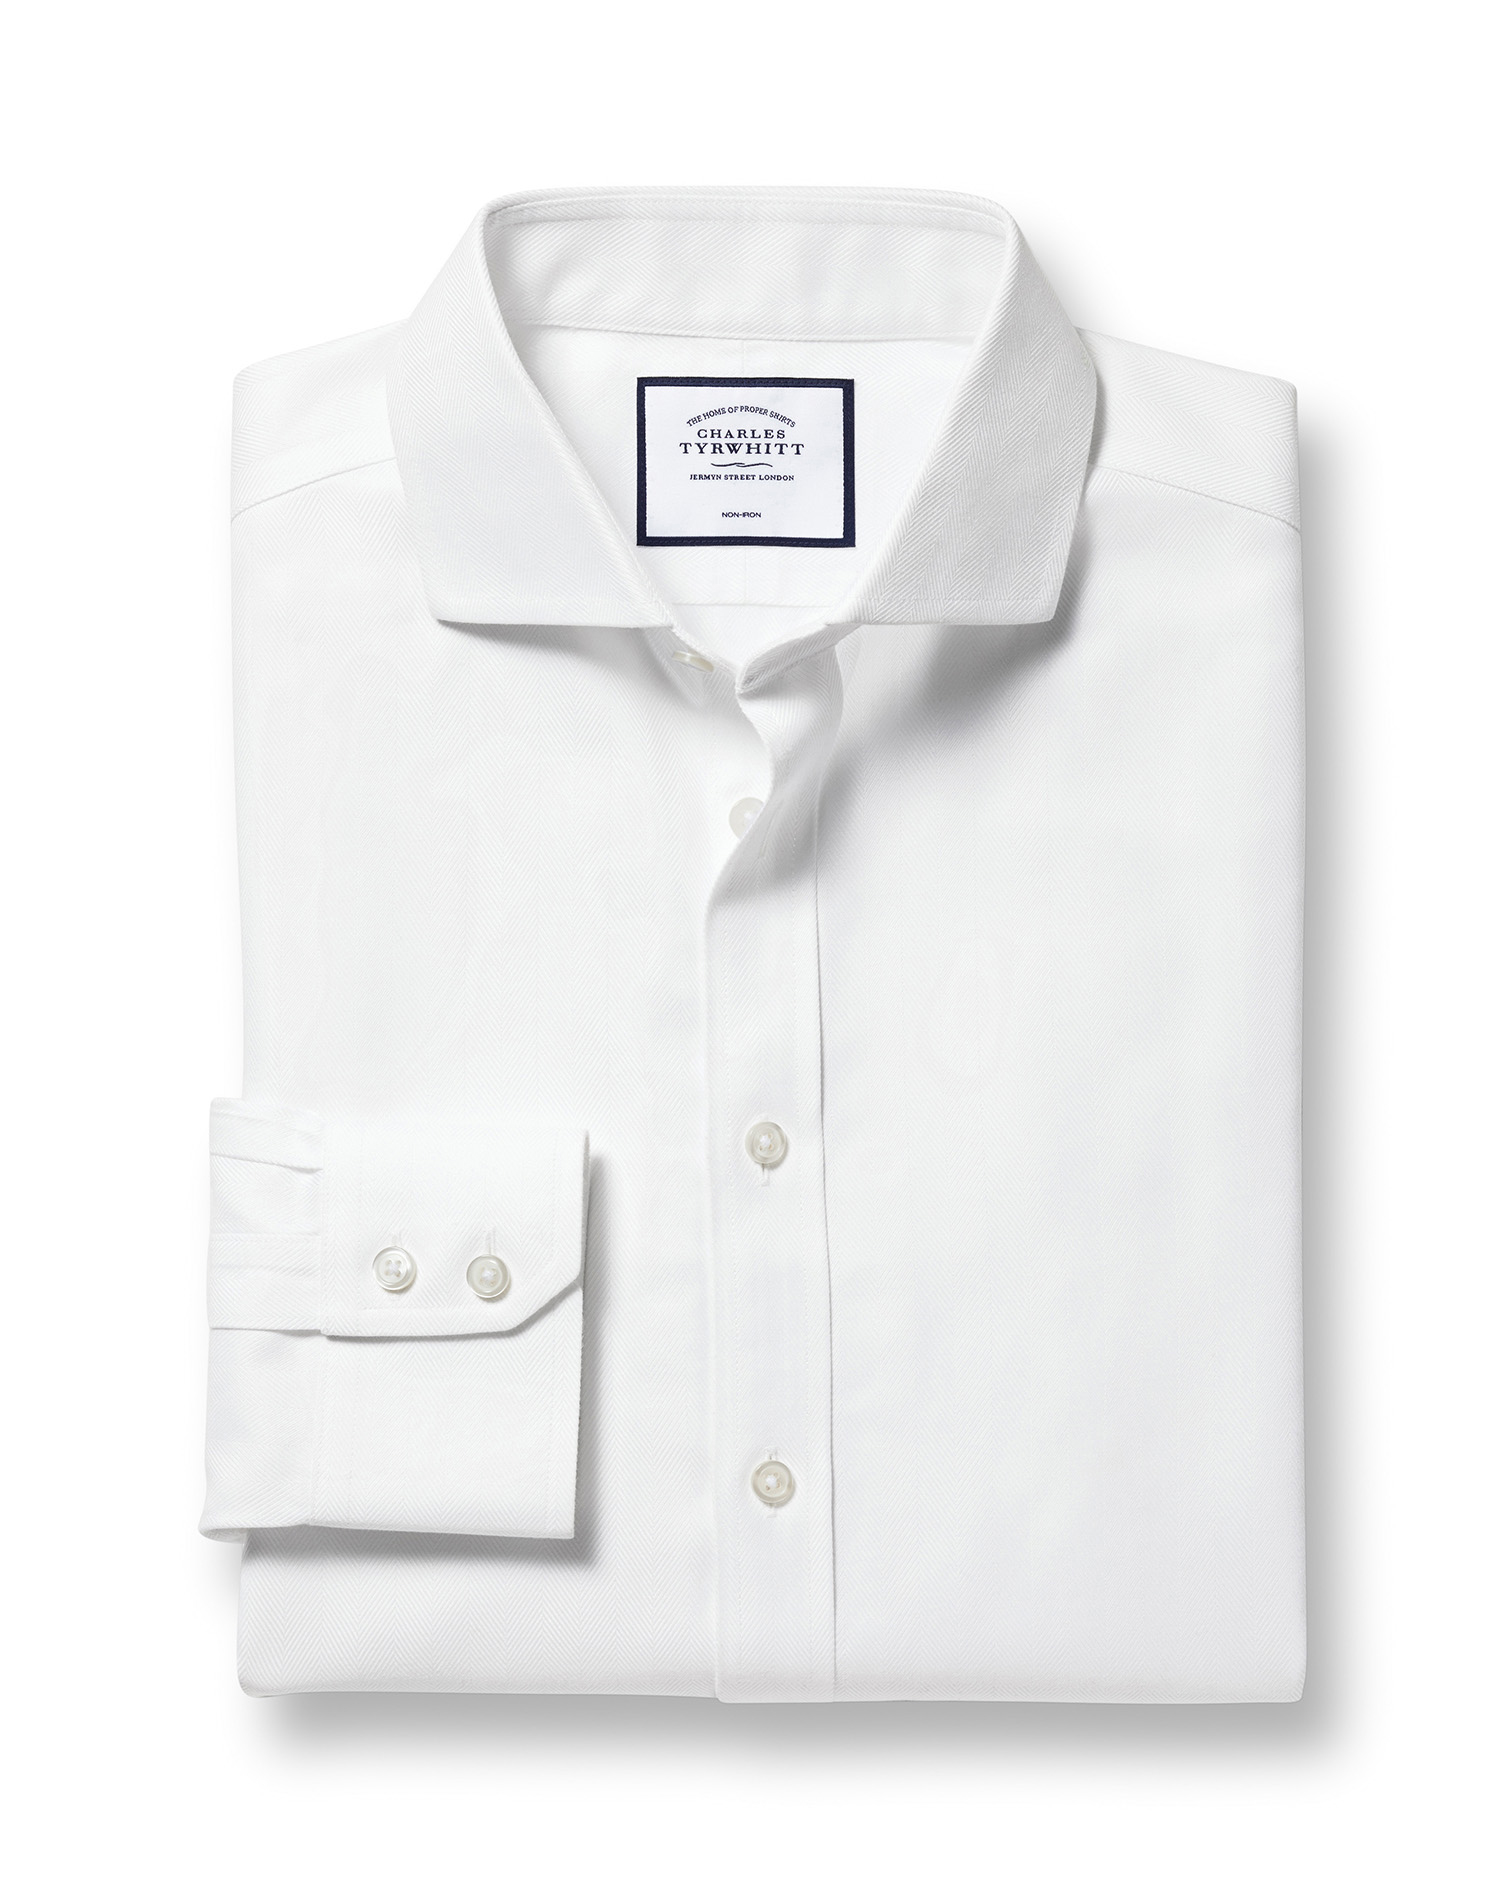 Extra Slim Fit Cutaway Non-Iron Herringbone White Cotton Formal Shirt Double Cuff Size 16/36 by Char